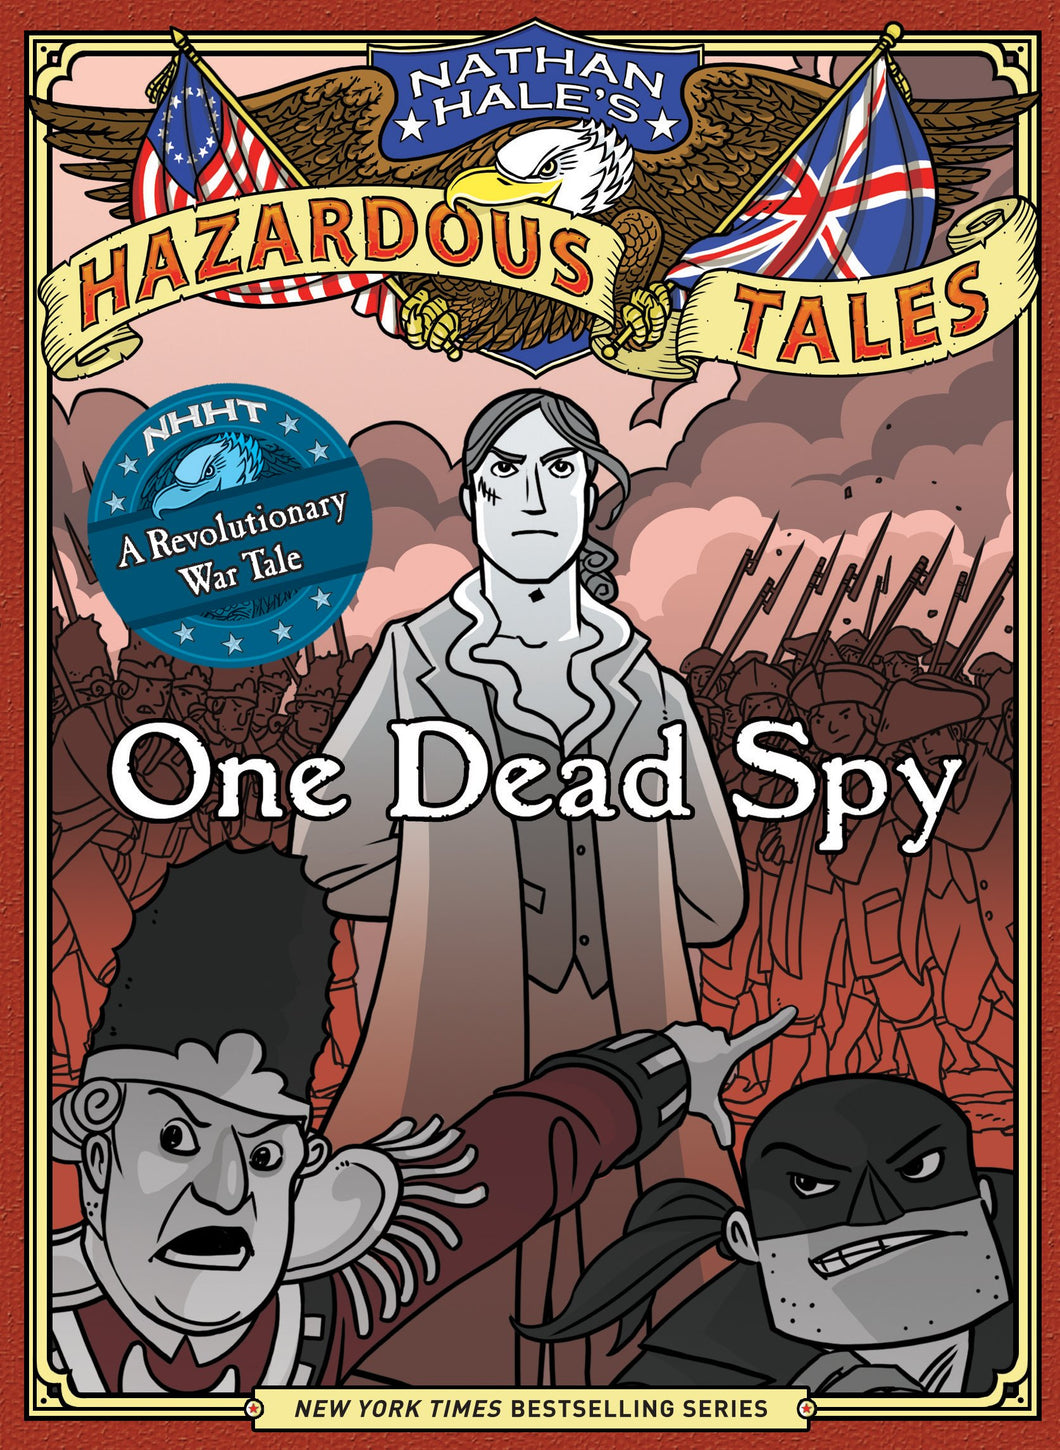 Nathan Hale's Hazardous Tales #1: One Dead Spy